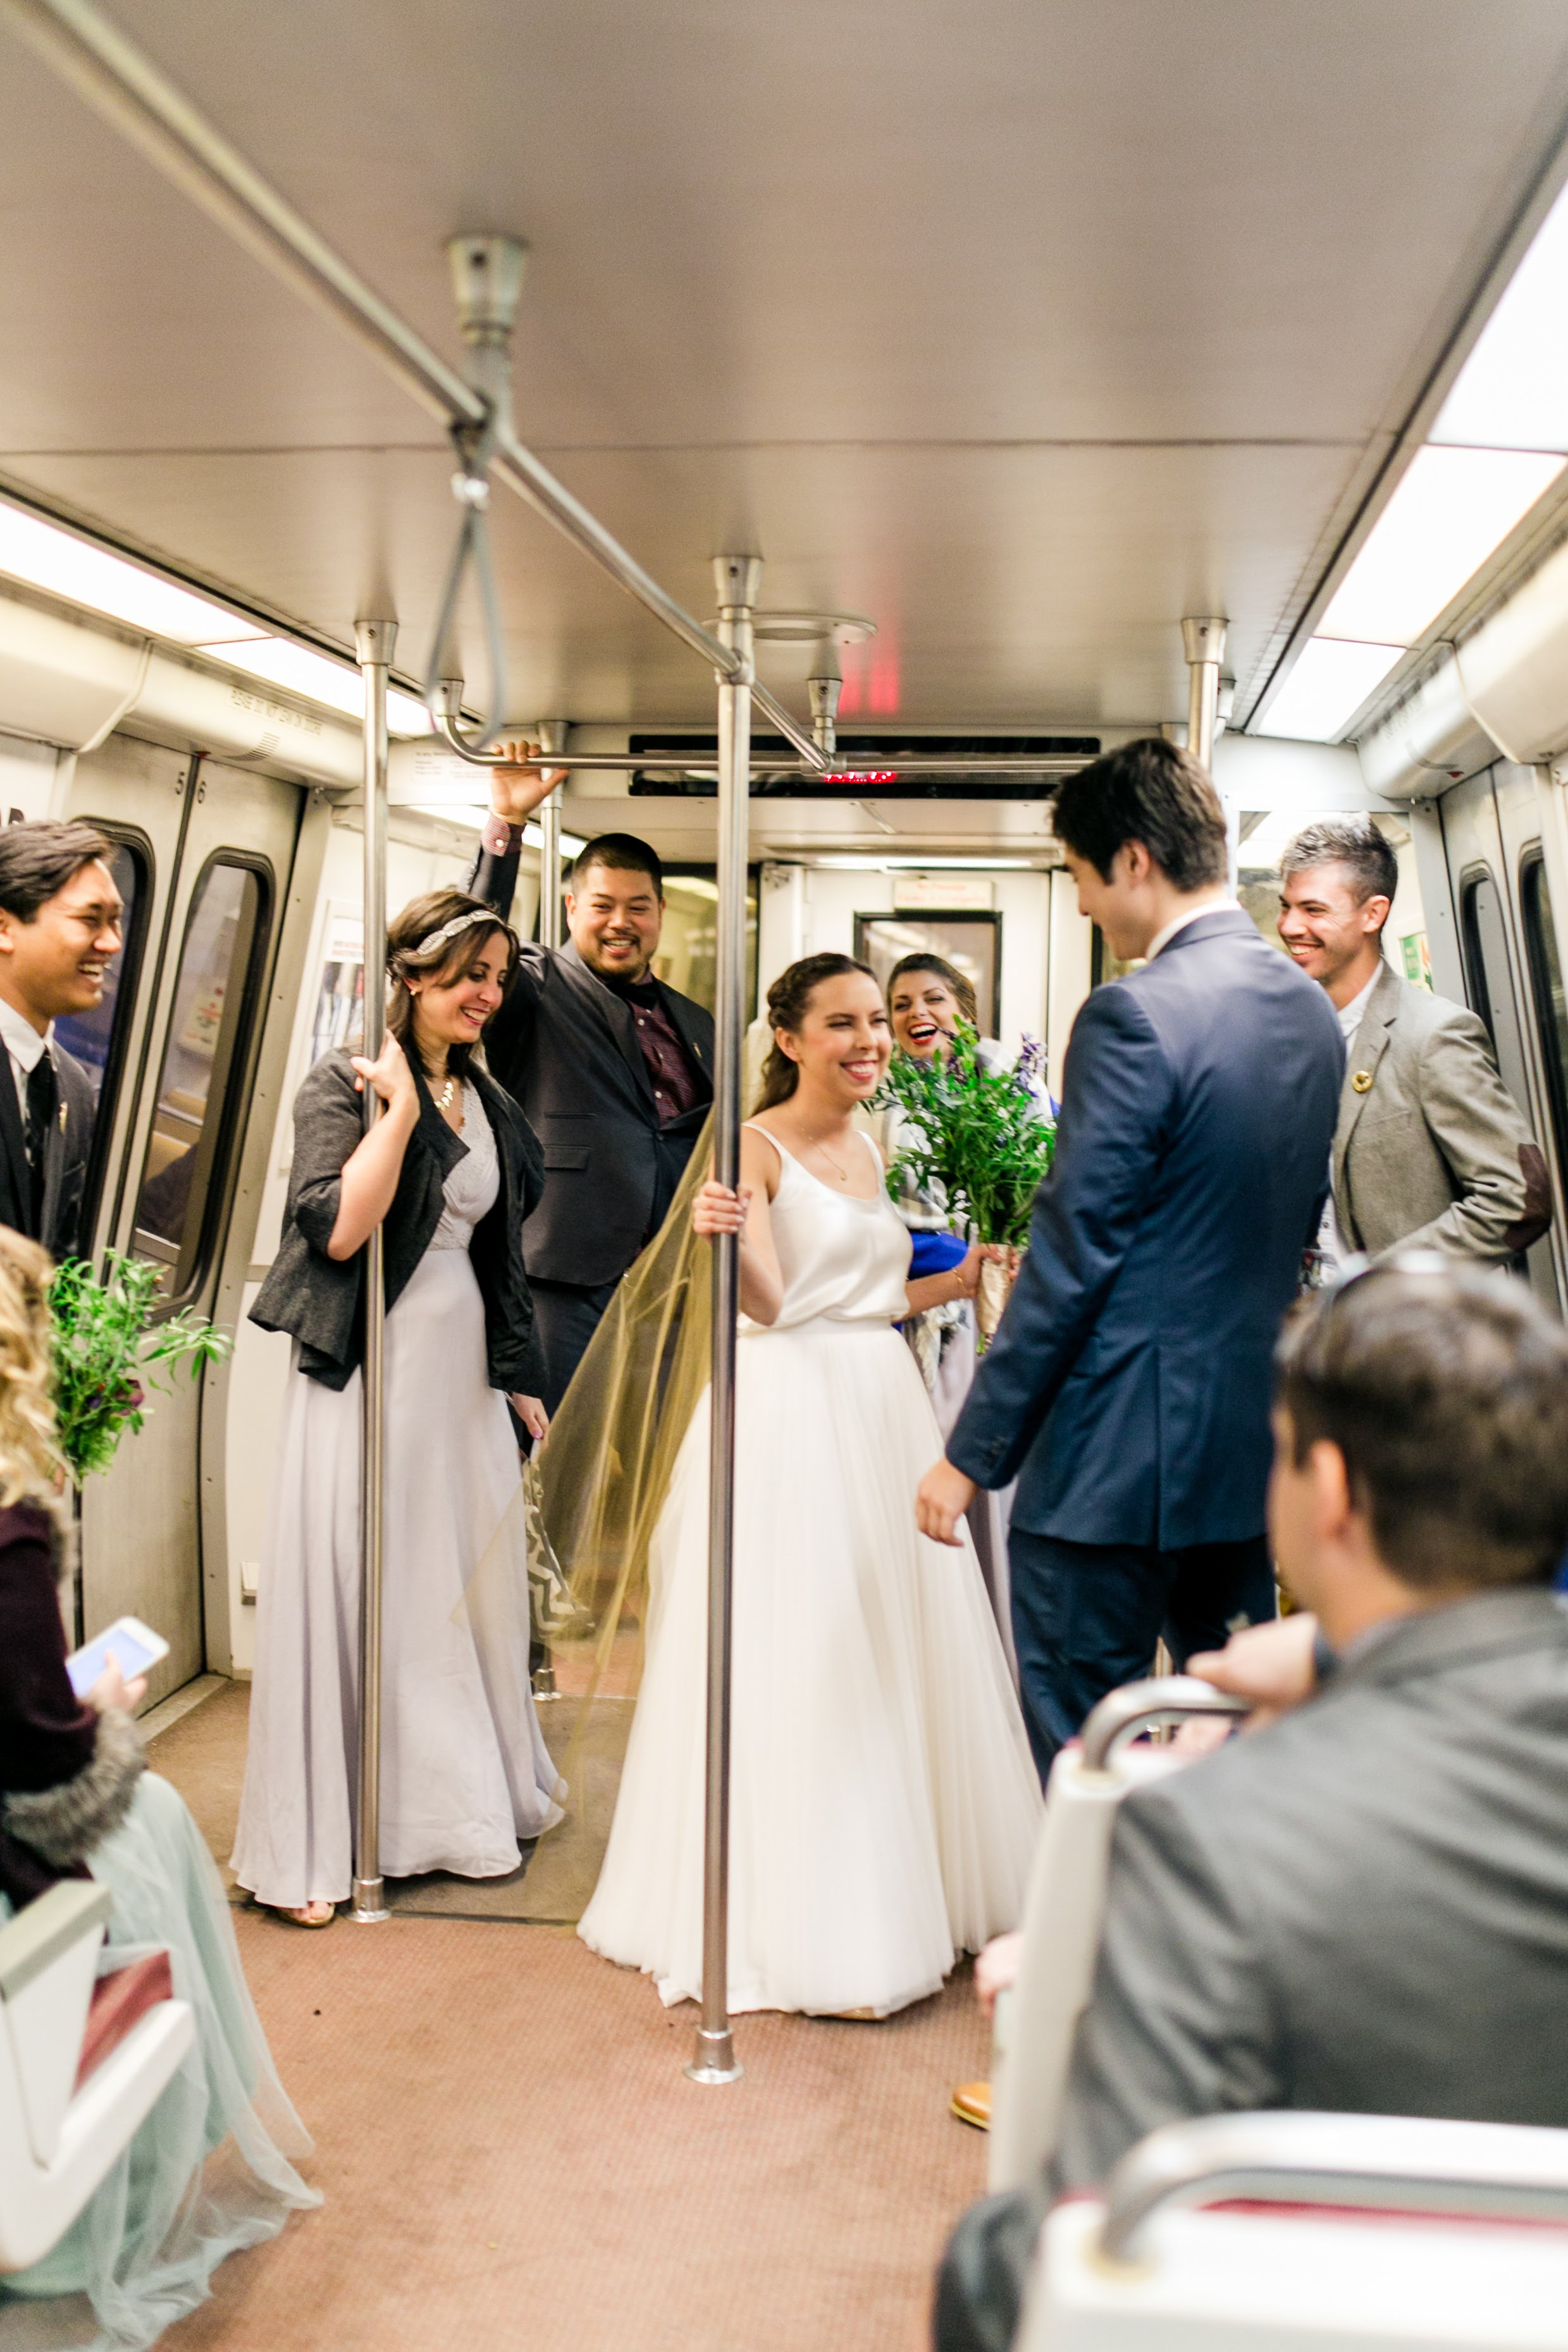 """Having a fun, unique, and trendy wedding on a budget in the District of Columbia turned out to be harder than we thought."" (Image: Brandon C. Photography)"